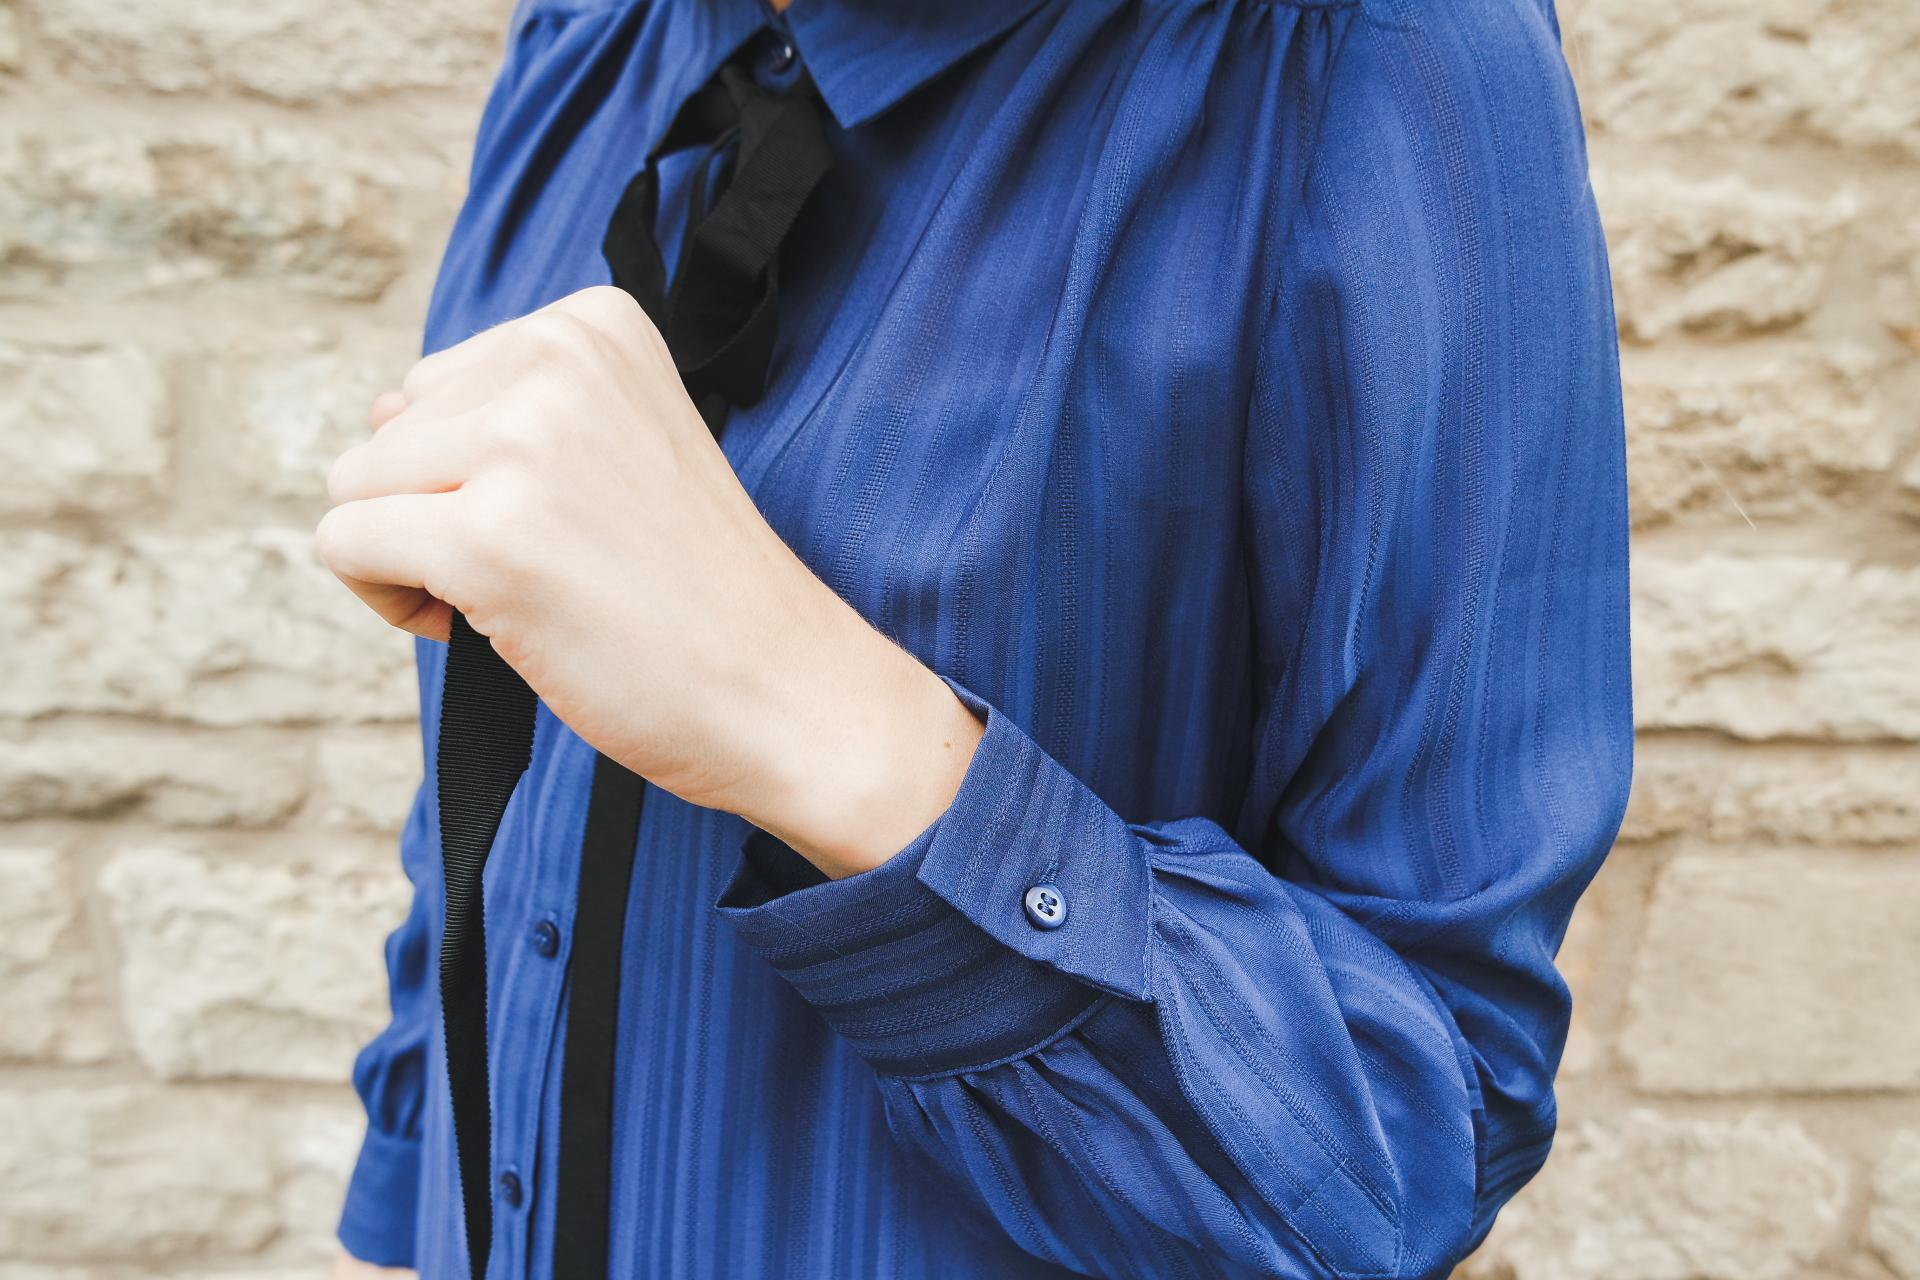 Black jeans blue shirt nexttake12 love style for Black shirt blue jeans